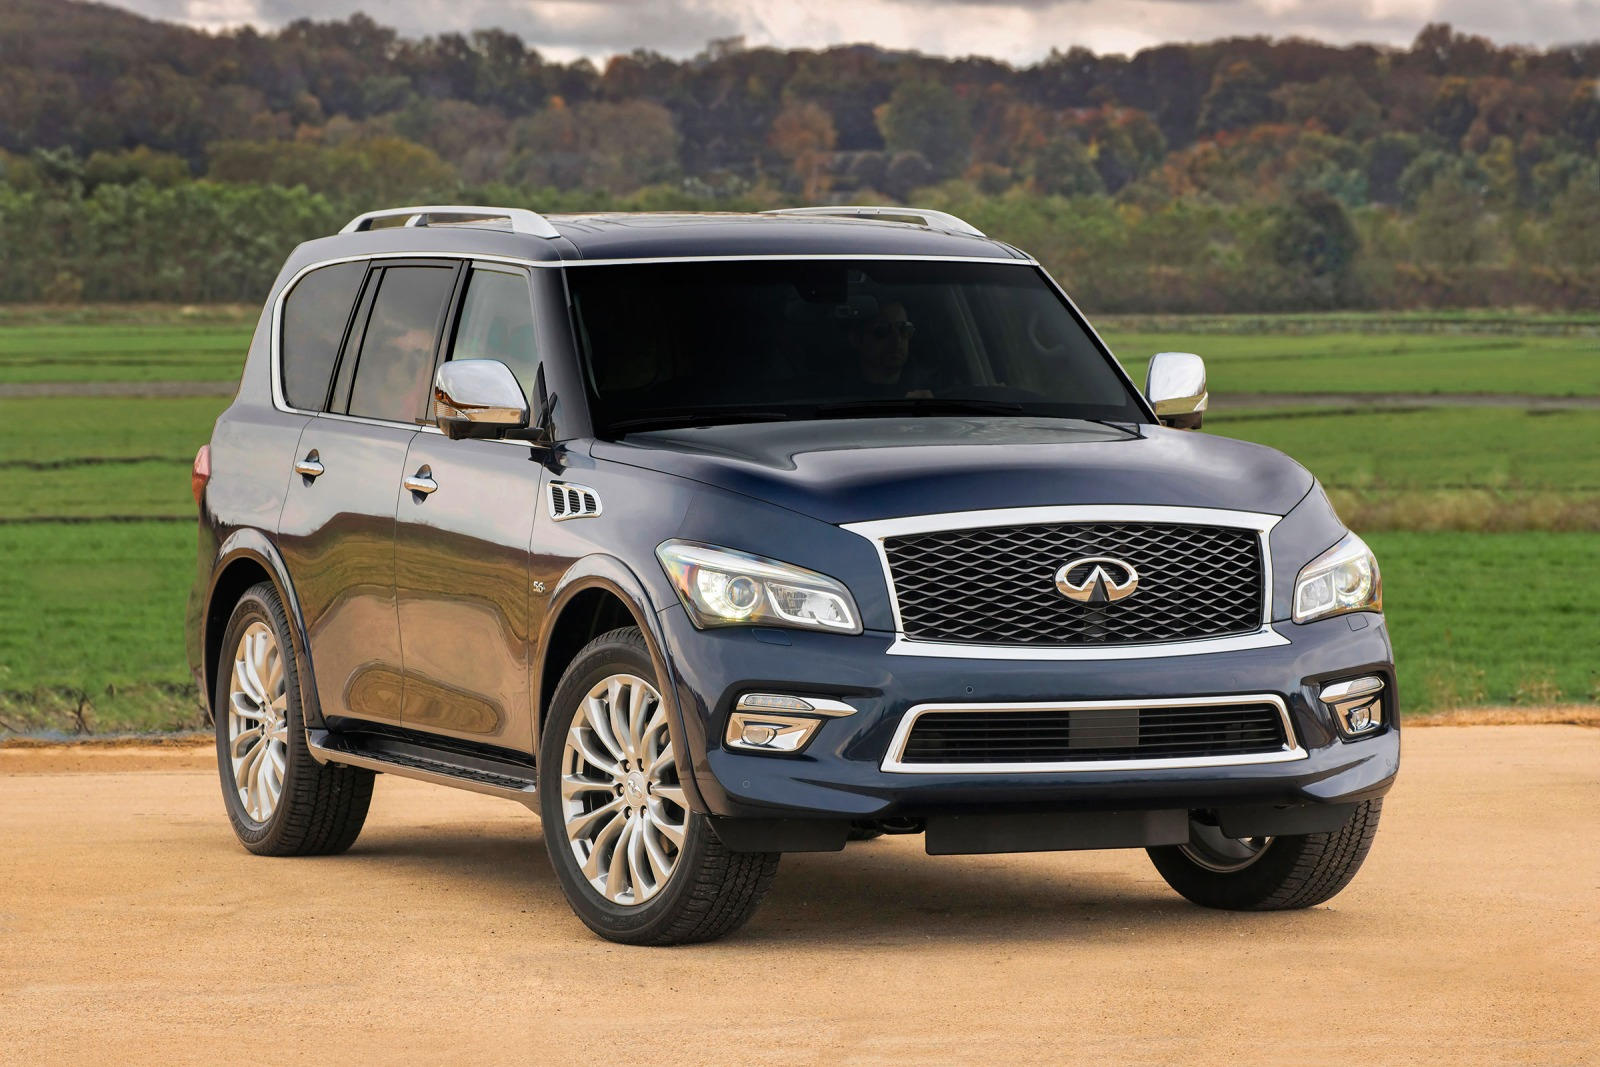 2018 infiniti qx80 review trims specs and price carbuzz. Black Bedroom Furniture Sets. Home Design Ideas